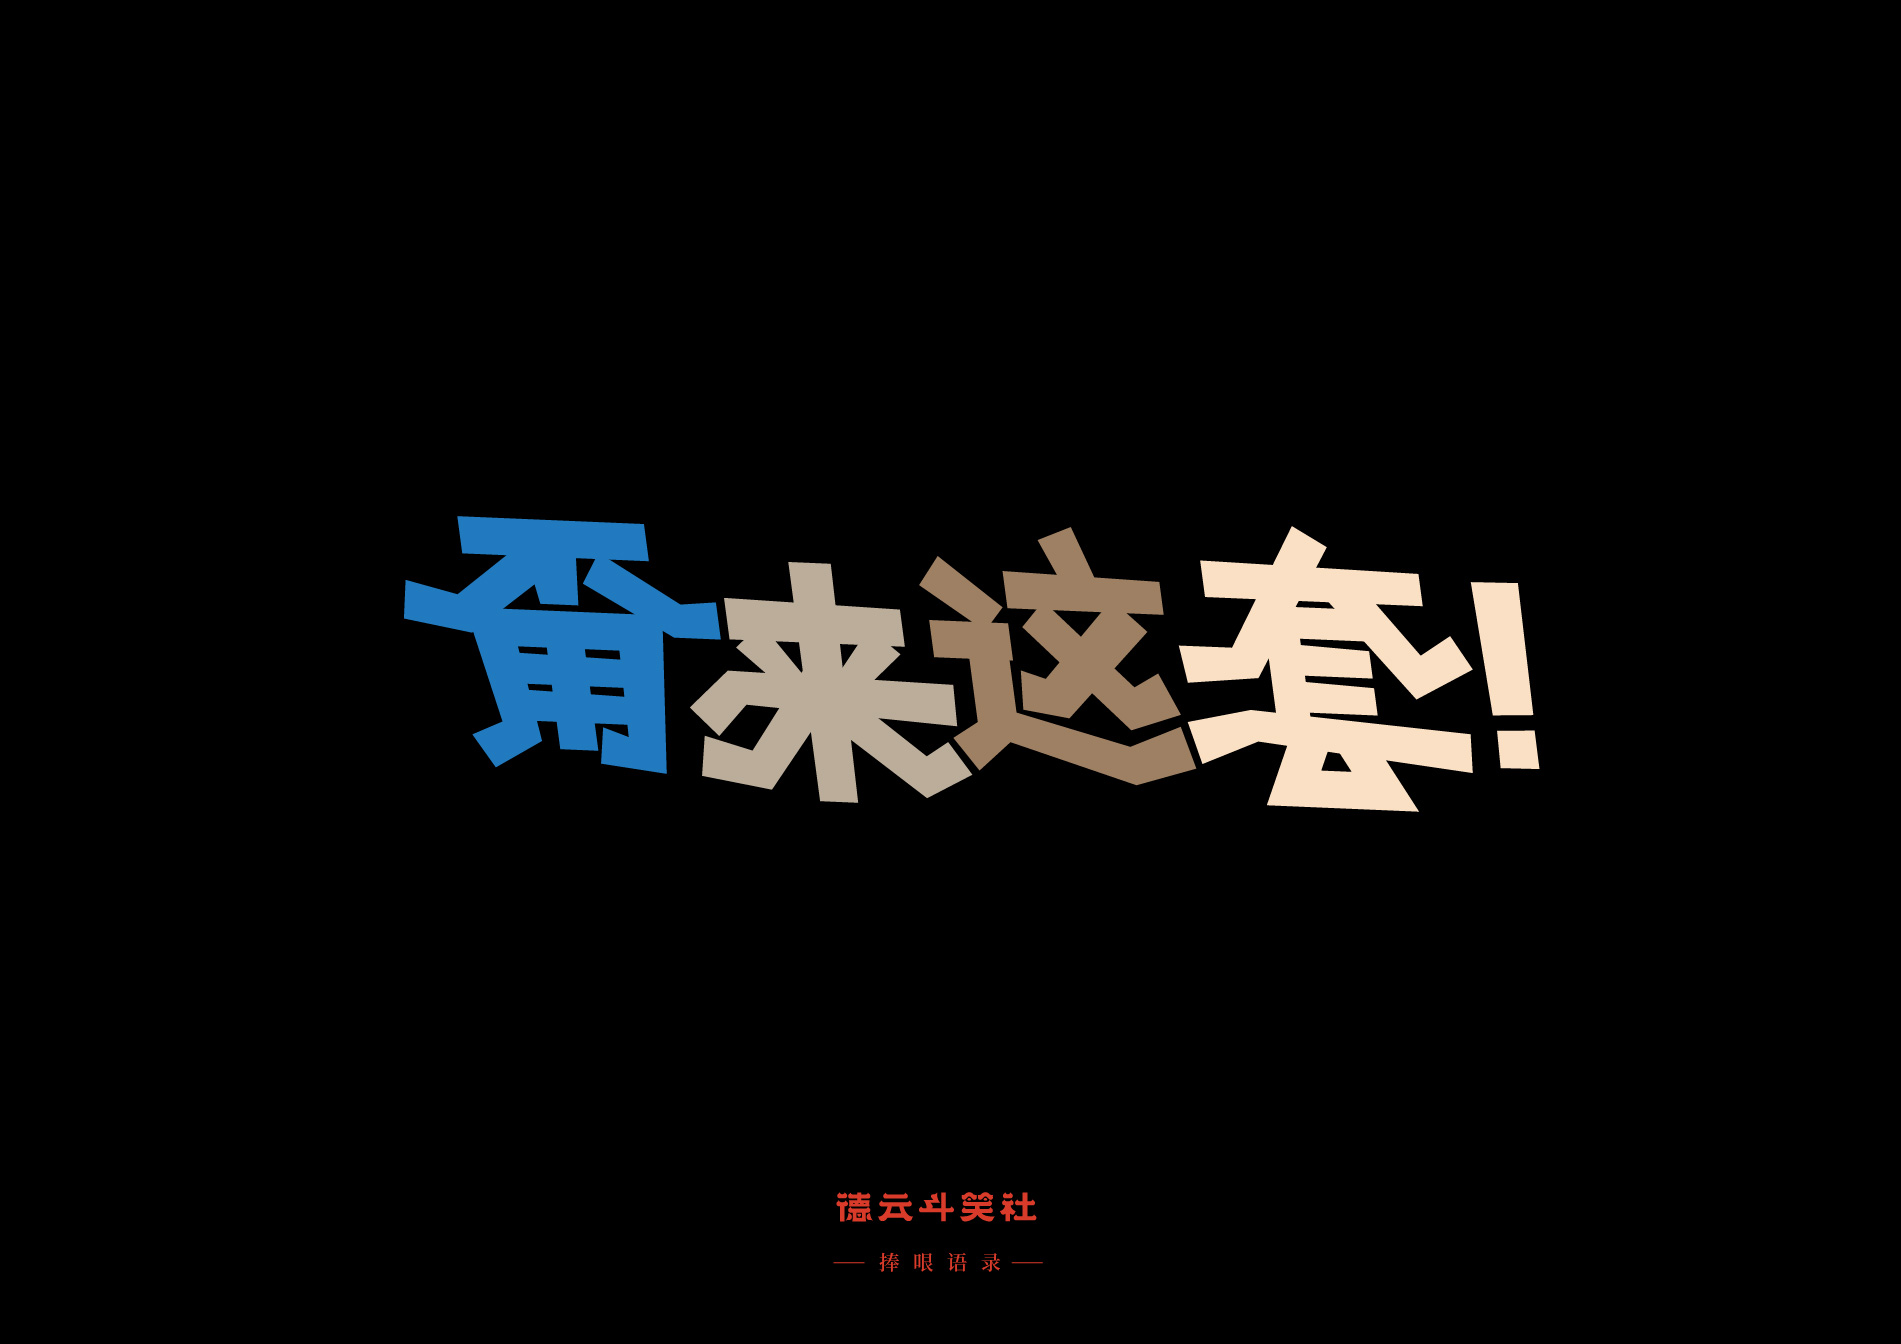 9P Collection of the latest Chinese font design schemes in 2021 #.635